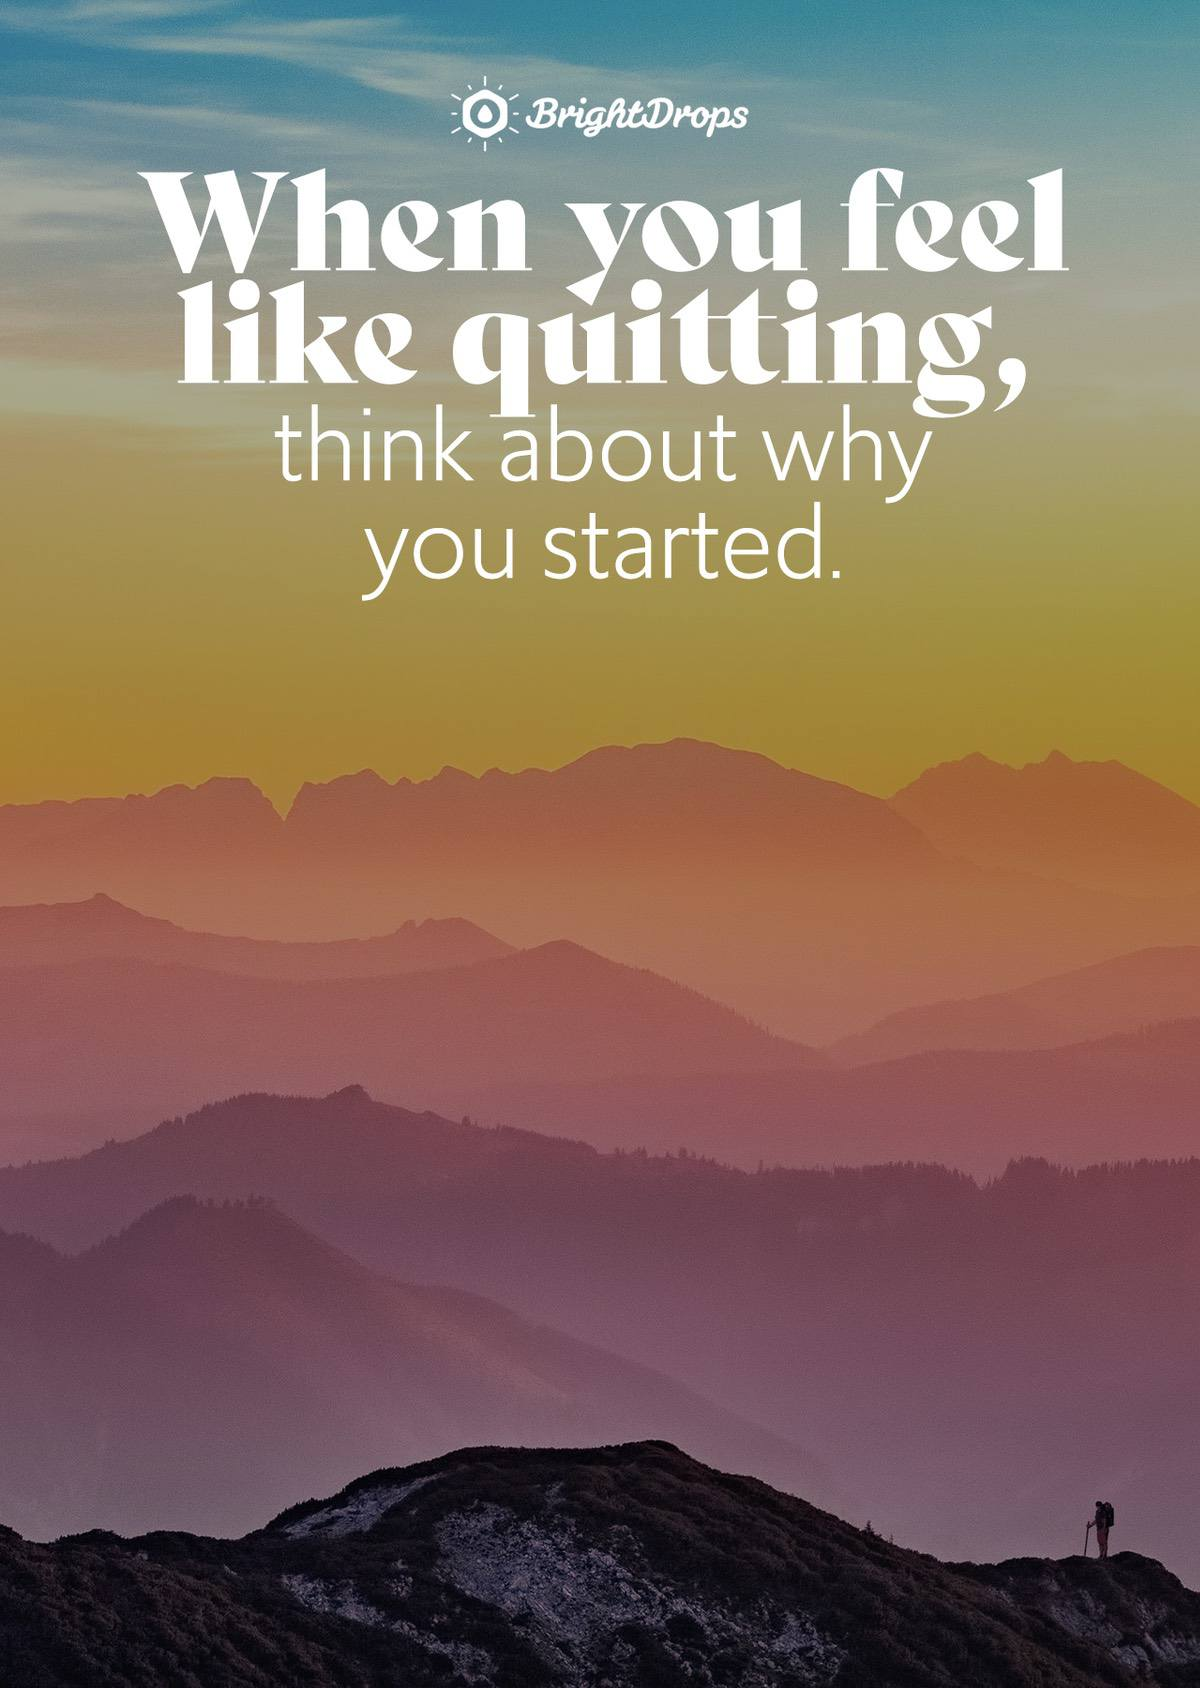 When you feel like quitting, think about why you started. - Unknown